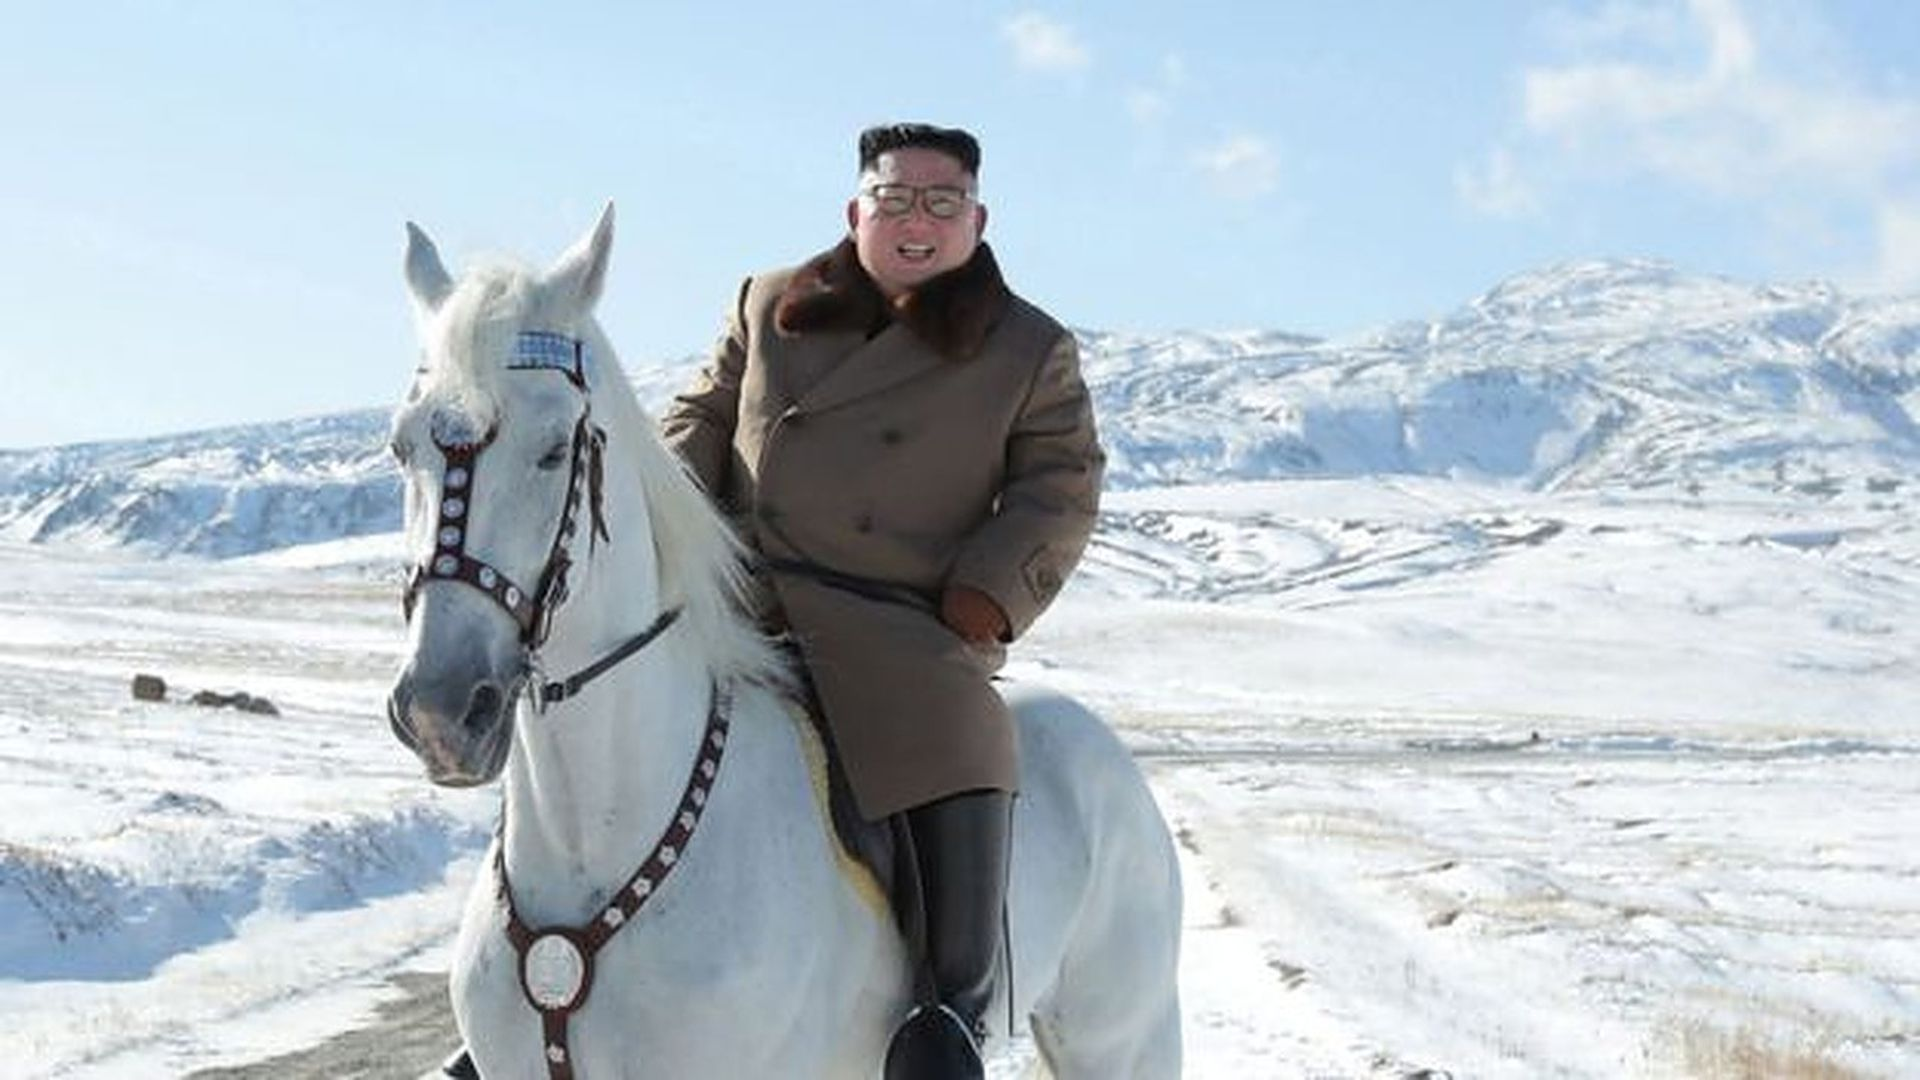 A North Korean state media photo of leader Kim Jong-un atop a white horse in the snow in North Korea.